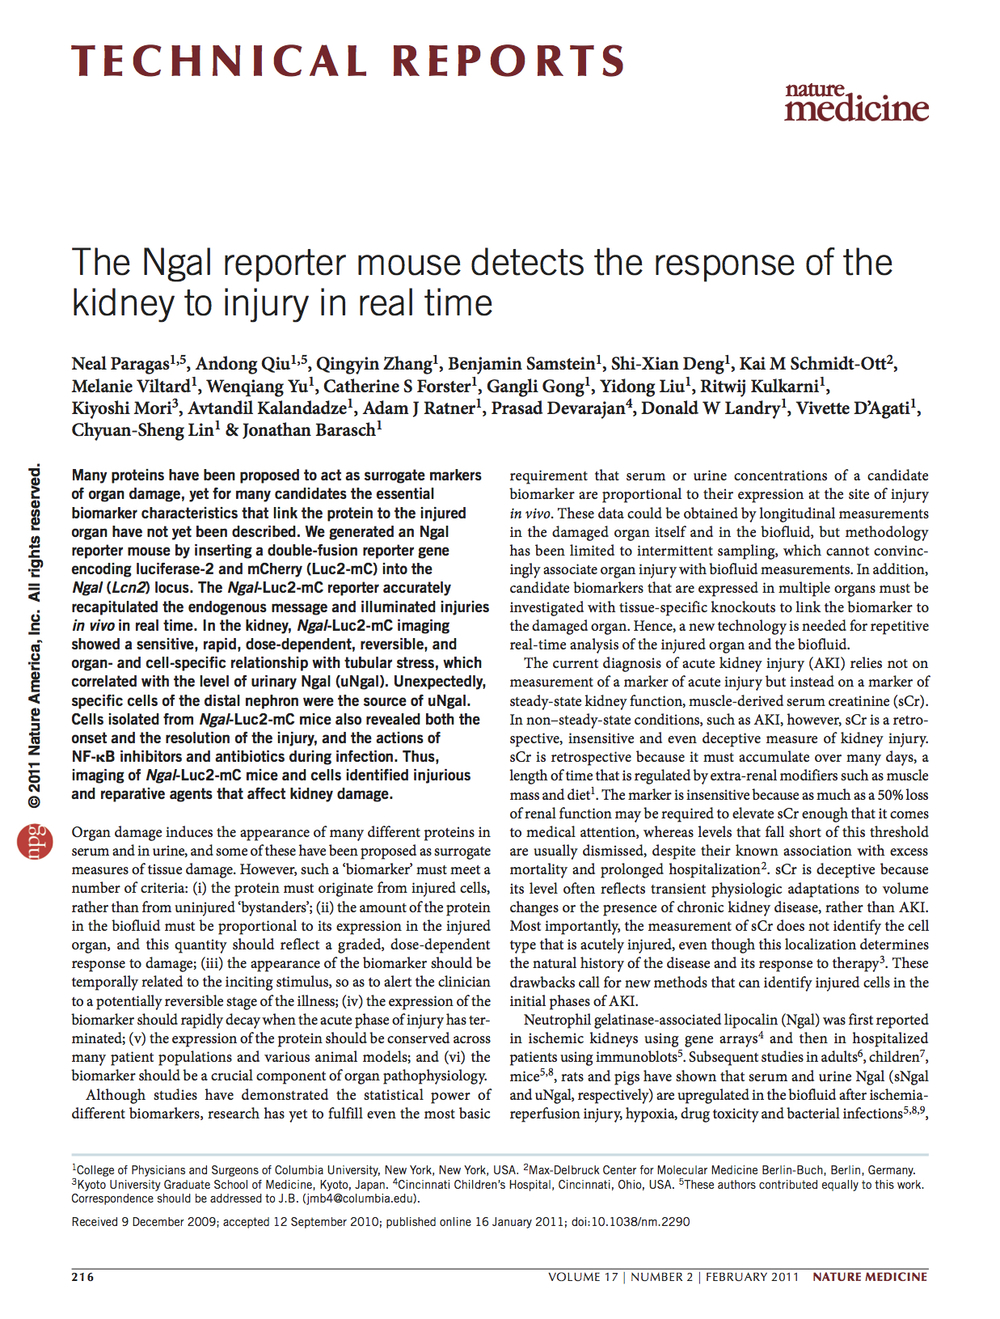 The Ngal reporter mouse detects the response of the kidney to injury in real time